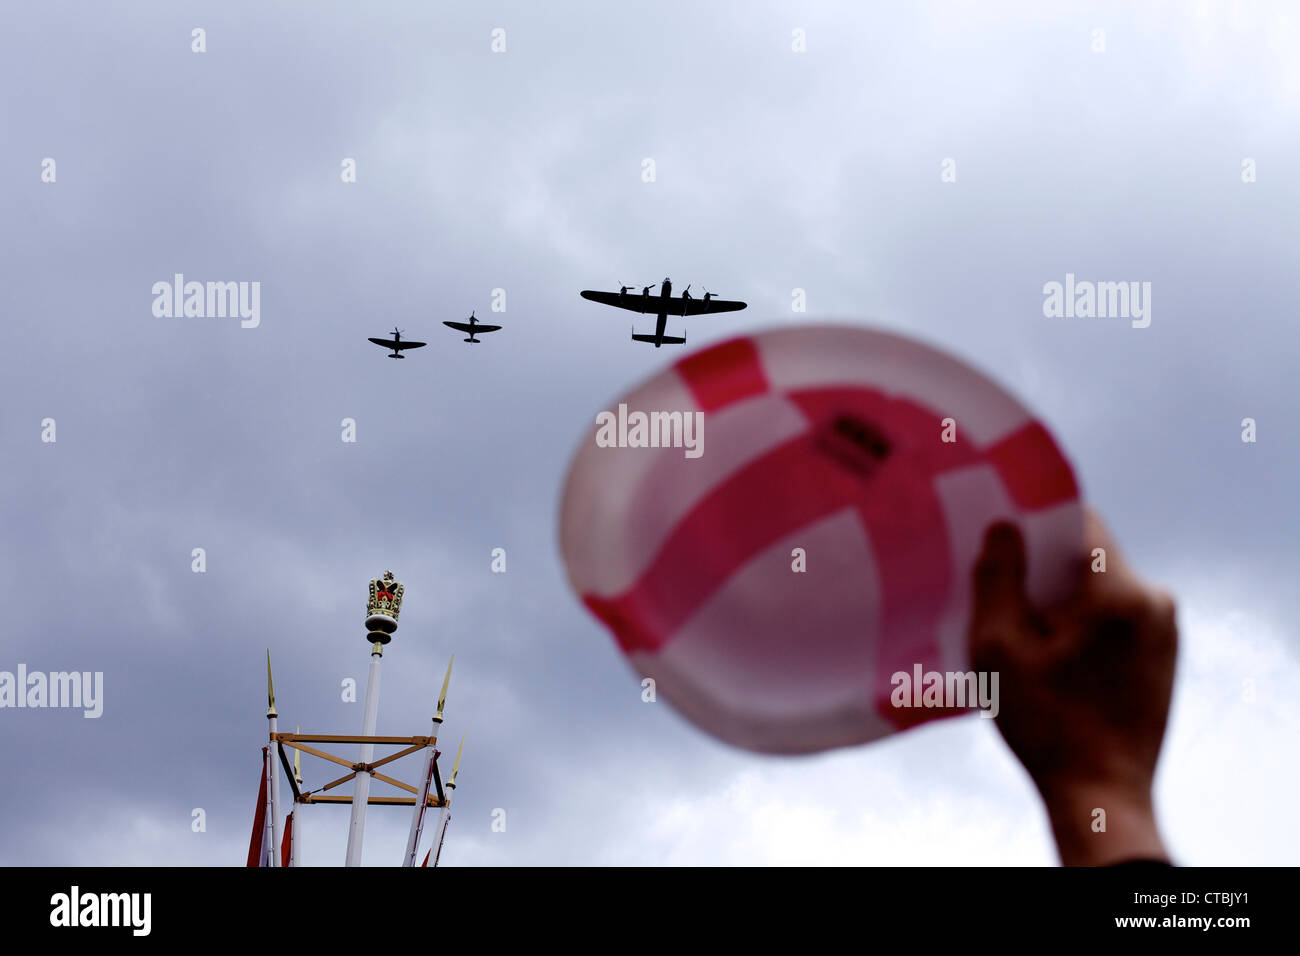 A Lancaster bomber and two Spitfires fly past against a foreground of crown a hat featuring a Saint George's - Stock Image